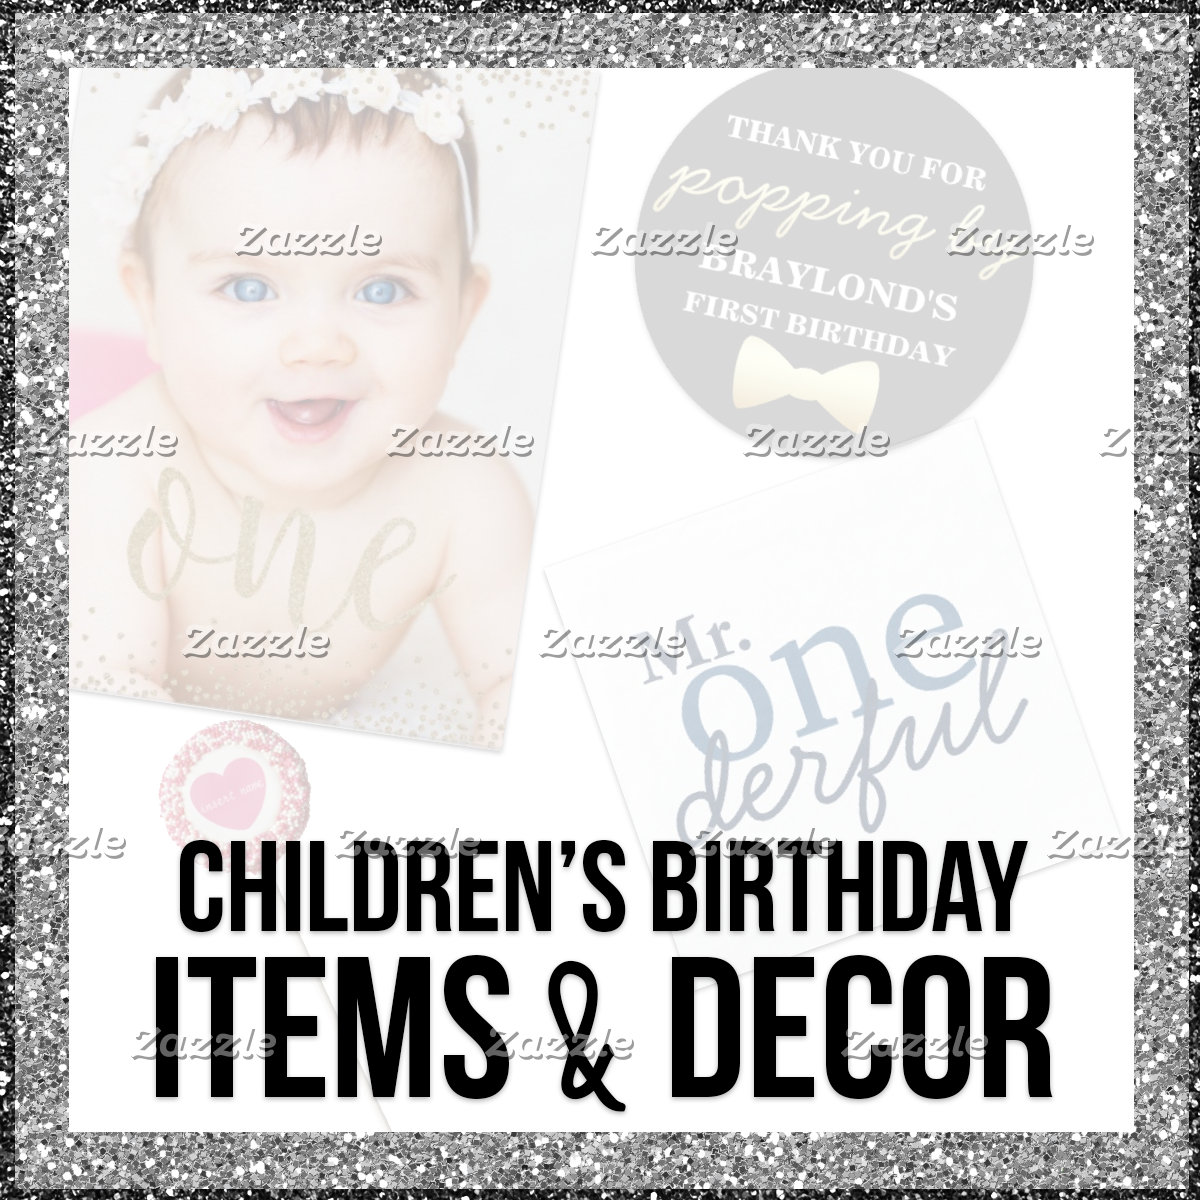 Children's Birthday Items & Decor